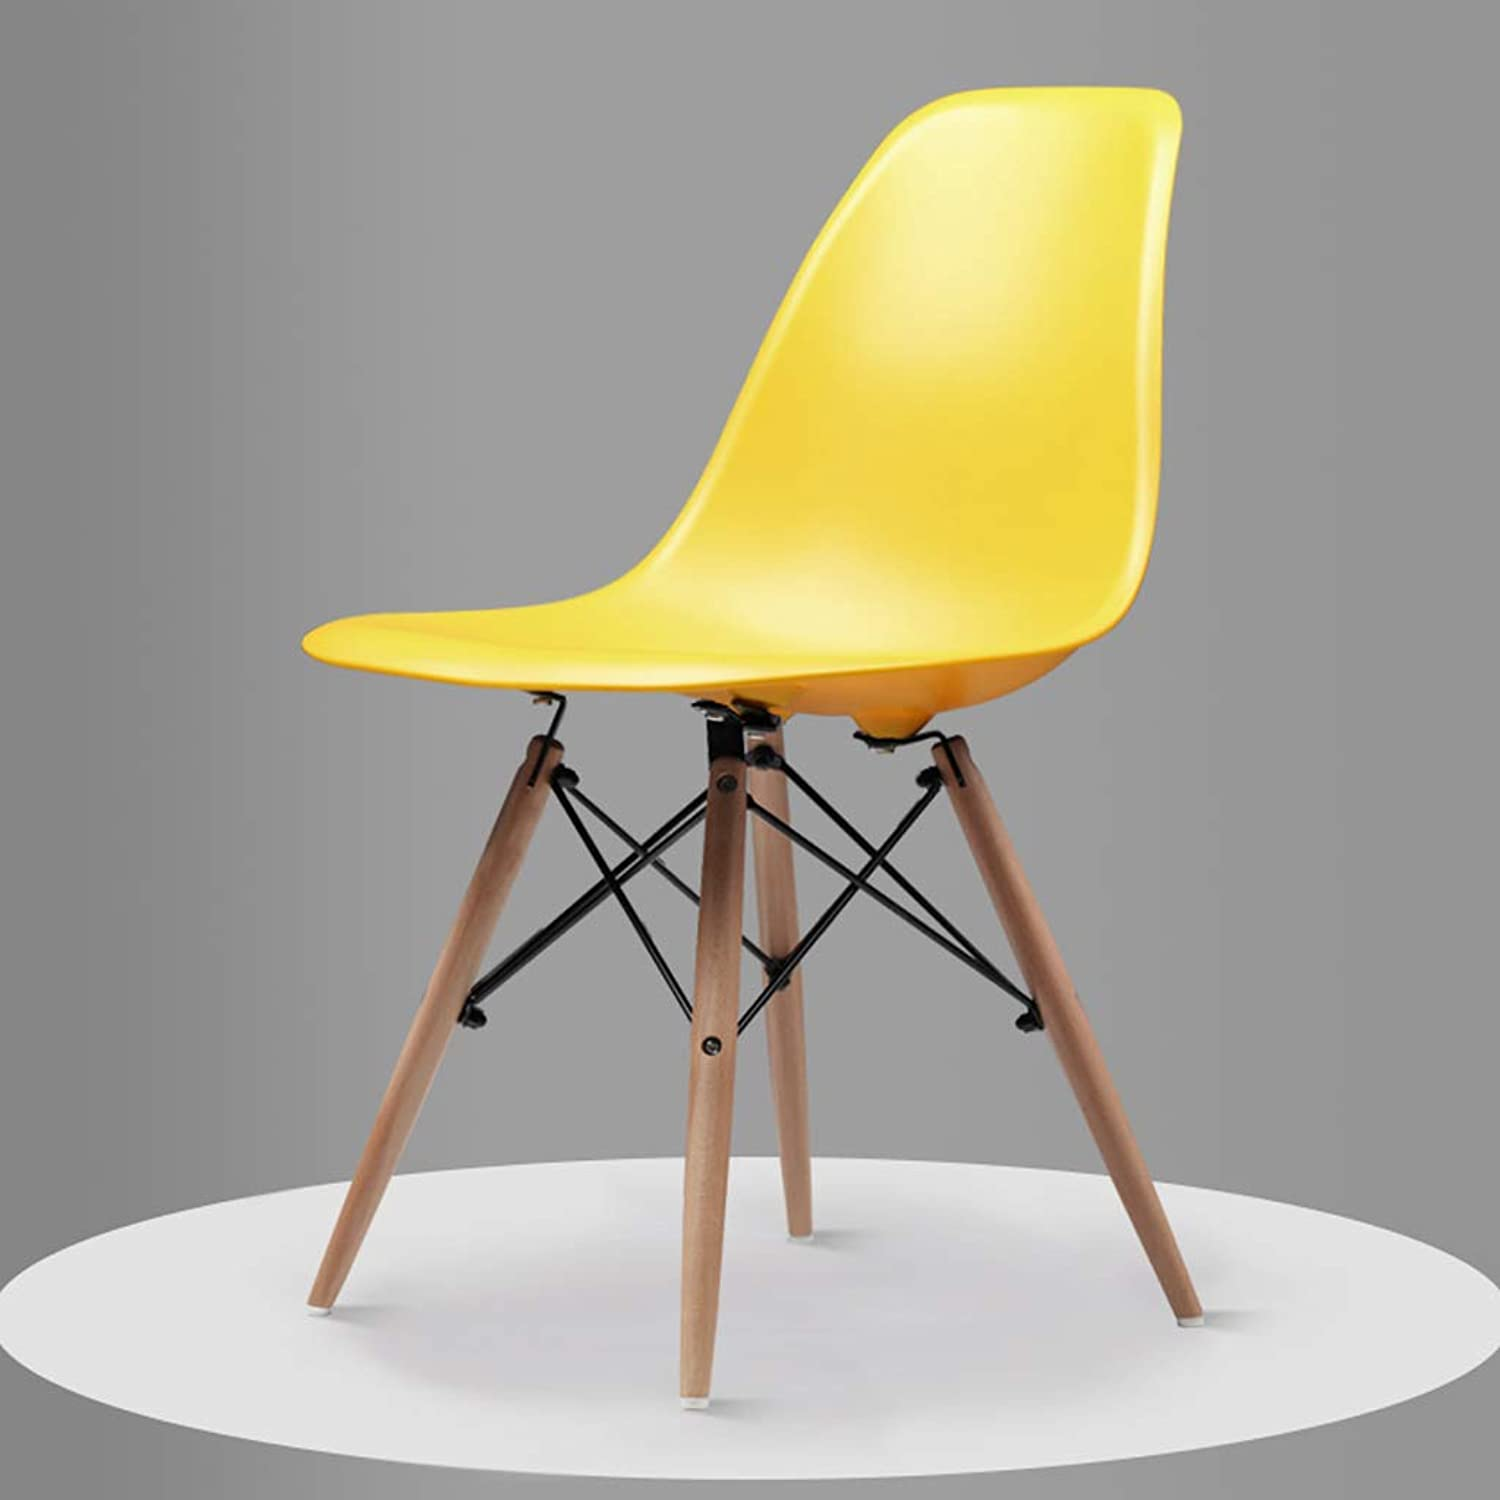 CXQ Nordic Modern Minimalist Home Solid Wood Chair bluee Green Yellow Dining Table Chair (color   Yellow)